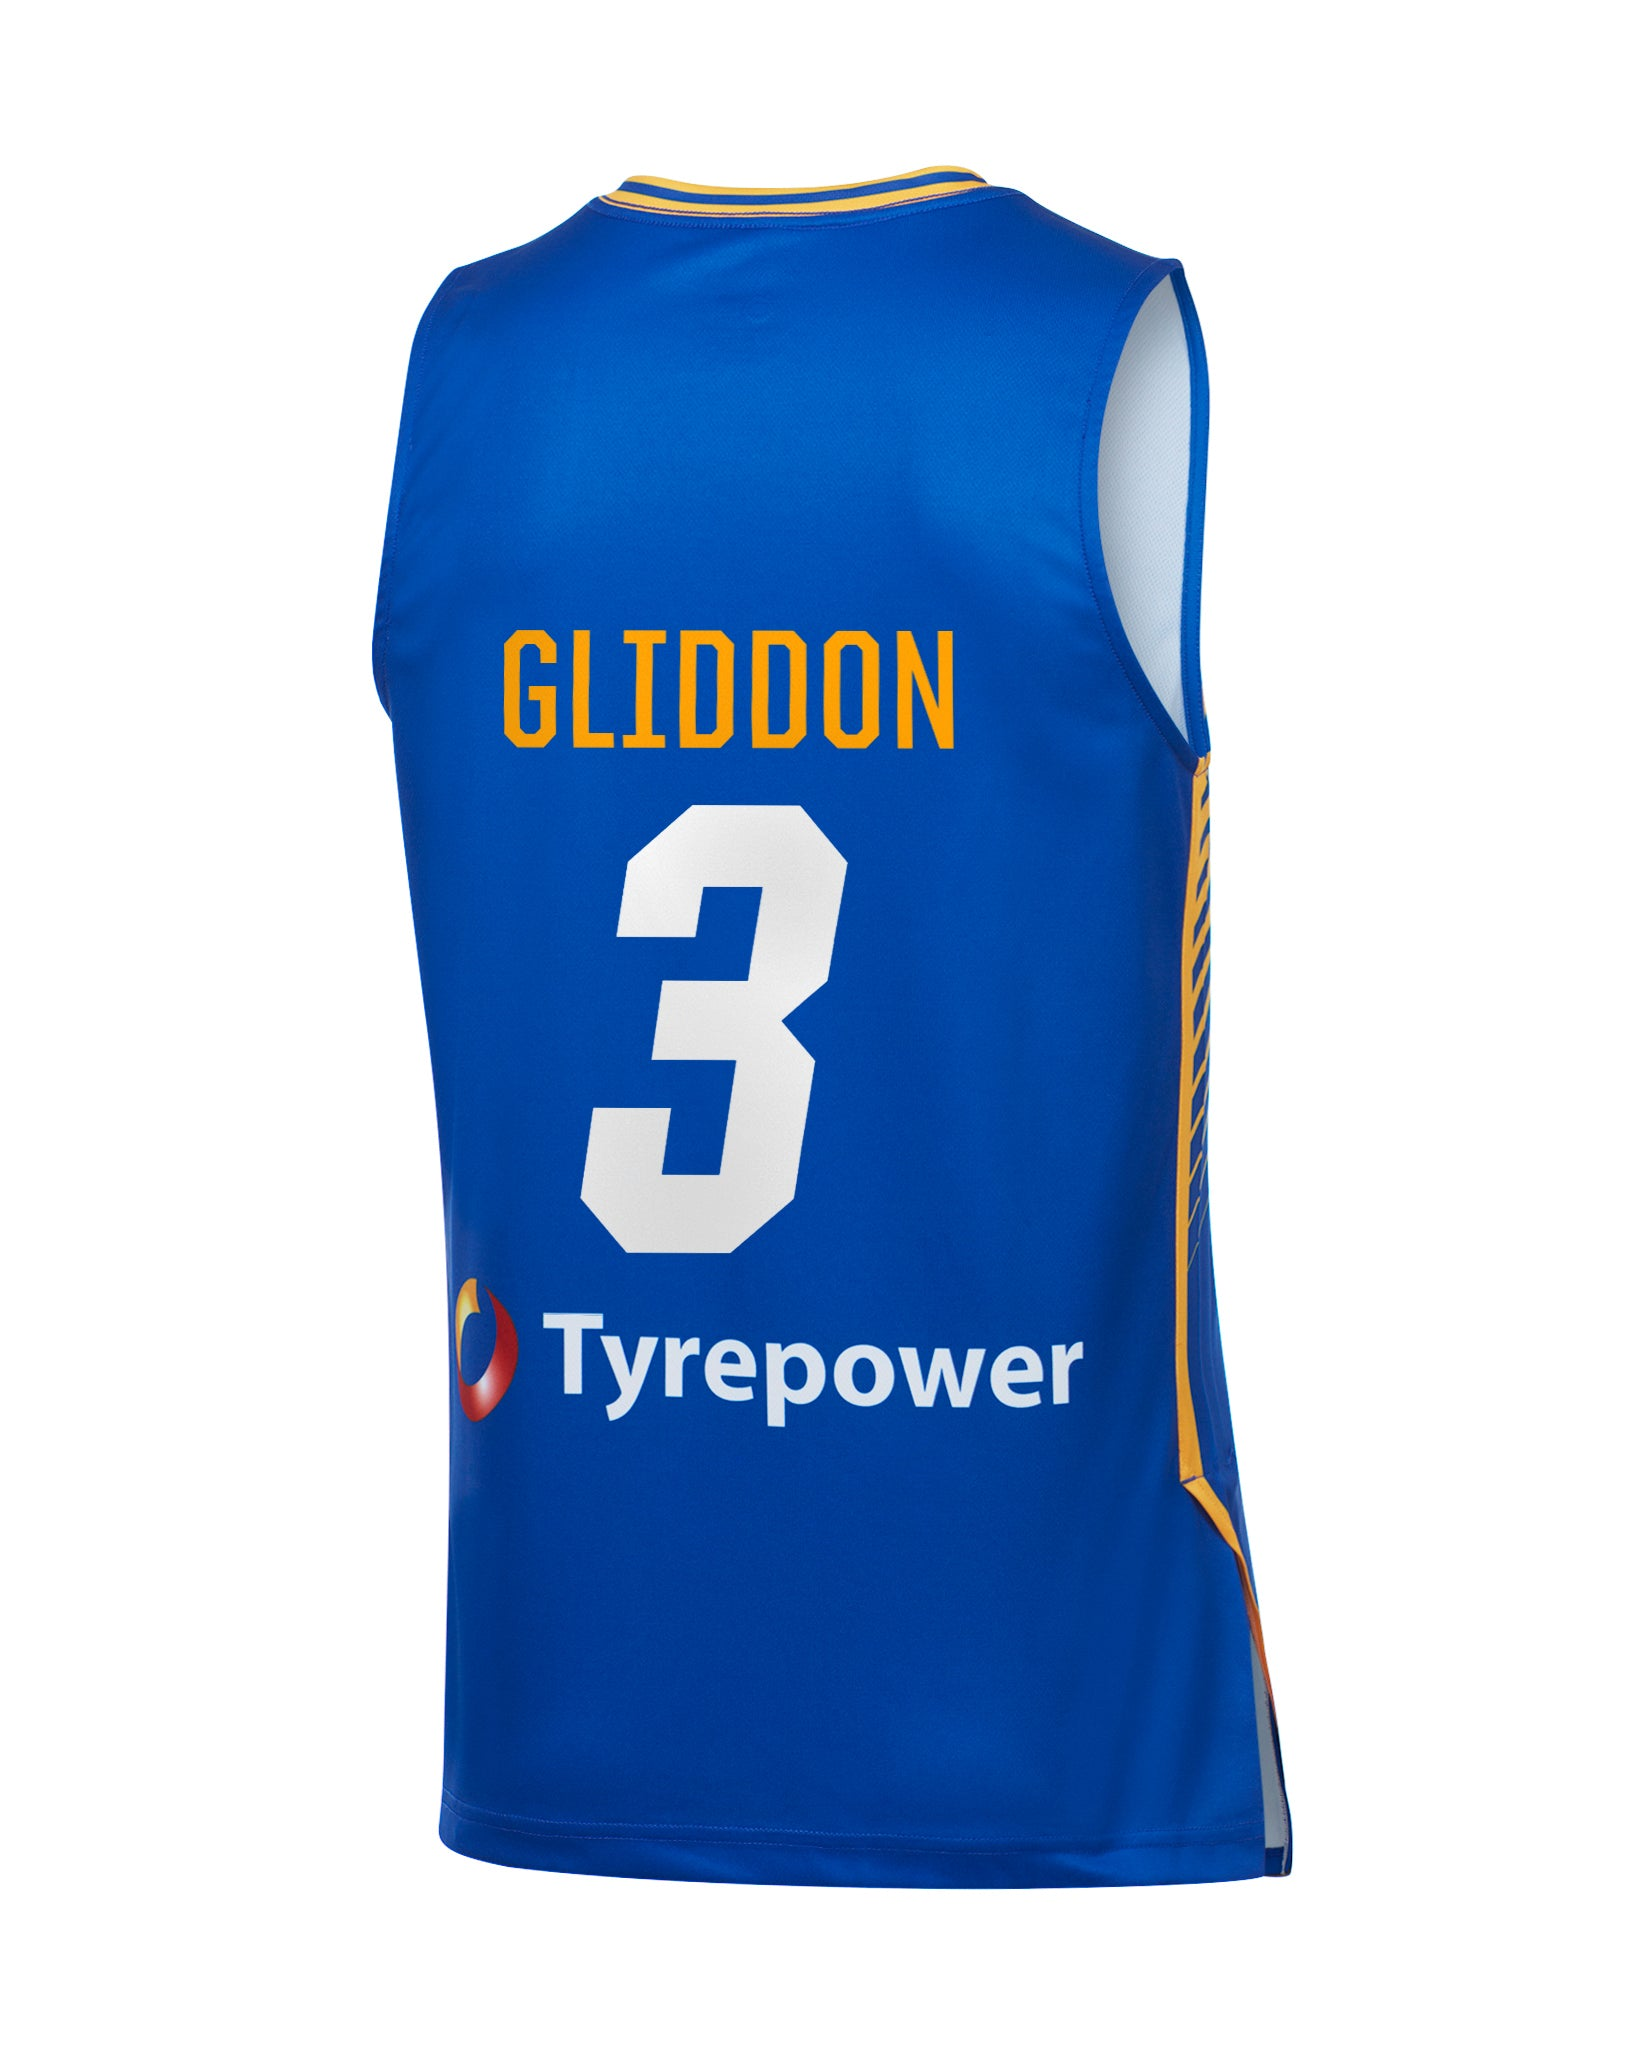 brisbane-bullets-19-20-authentic-home-jersey-cam-gliddon - Back Image